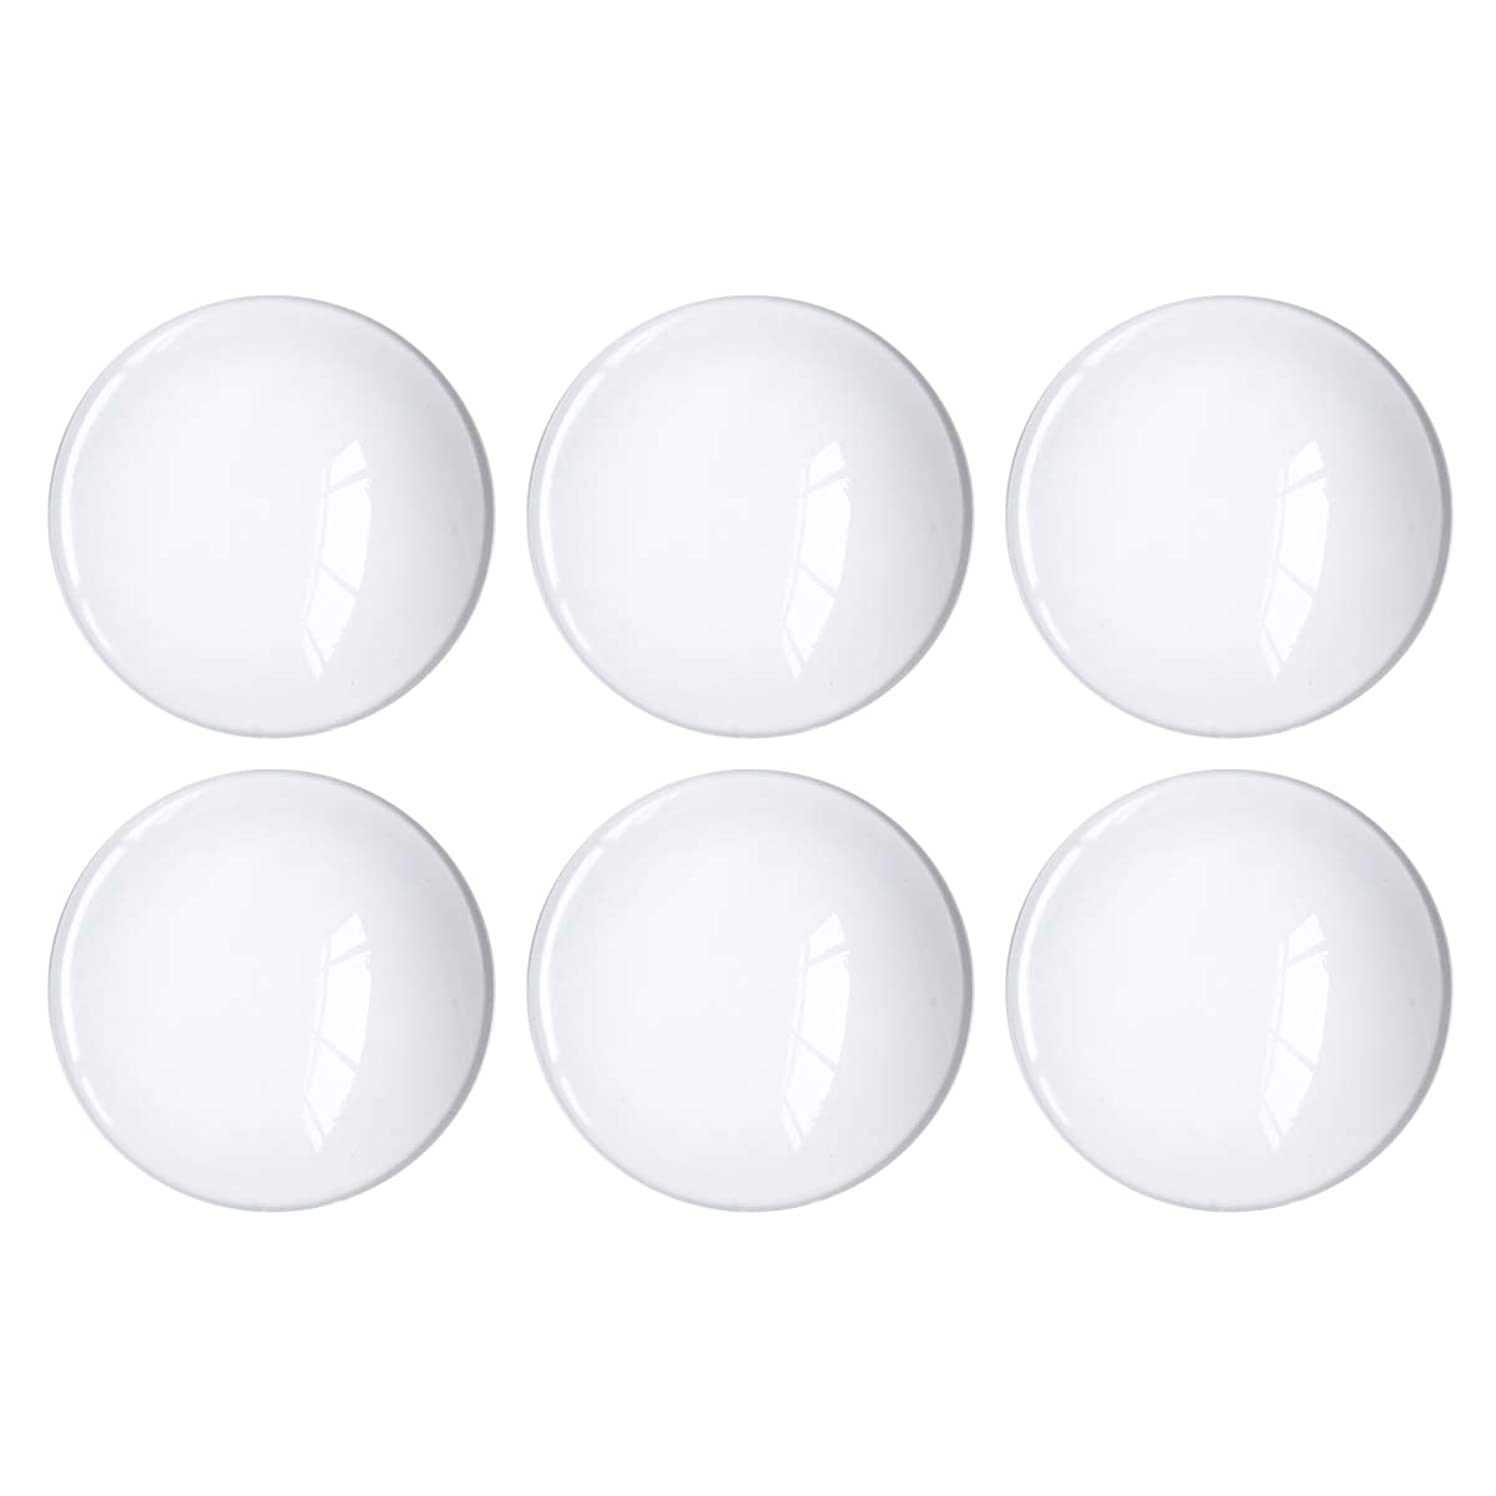 Glass Cabochon 50mm for Jewelry Making 10 PCS Round Dome Cabochons with Flat Backs Glass Dome Tiles Clear Cameo for Pendants Magnets and Crafts (10 PCS, 2 INCH)